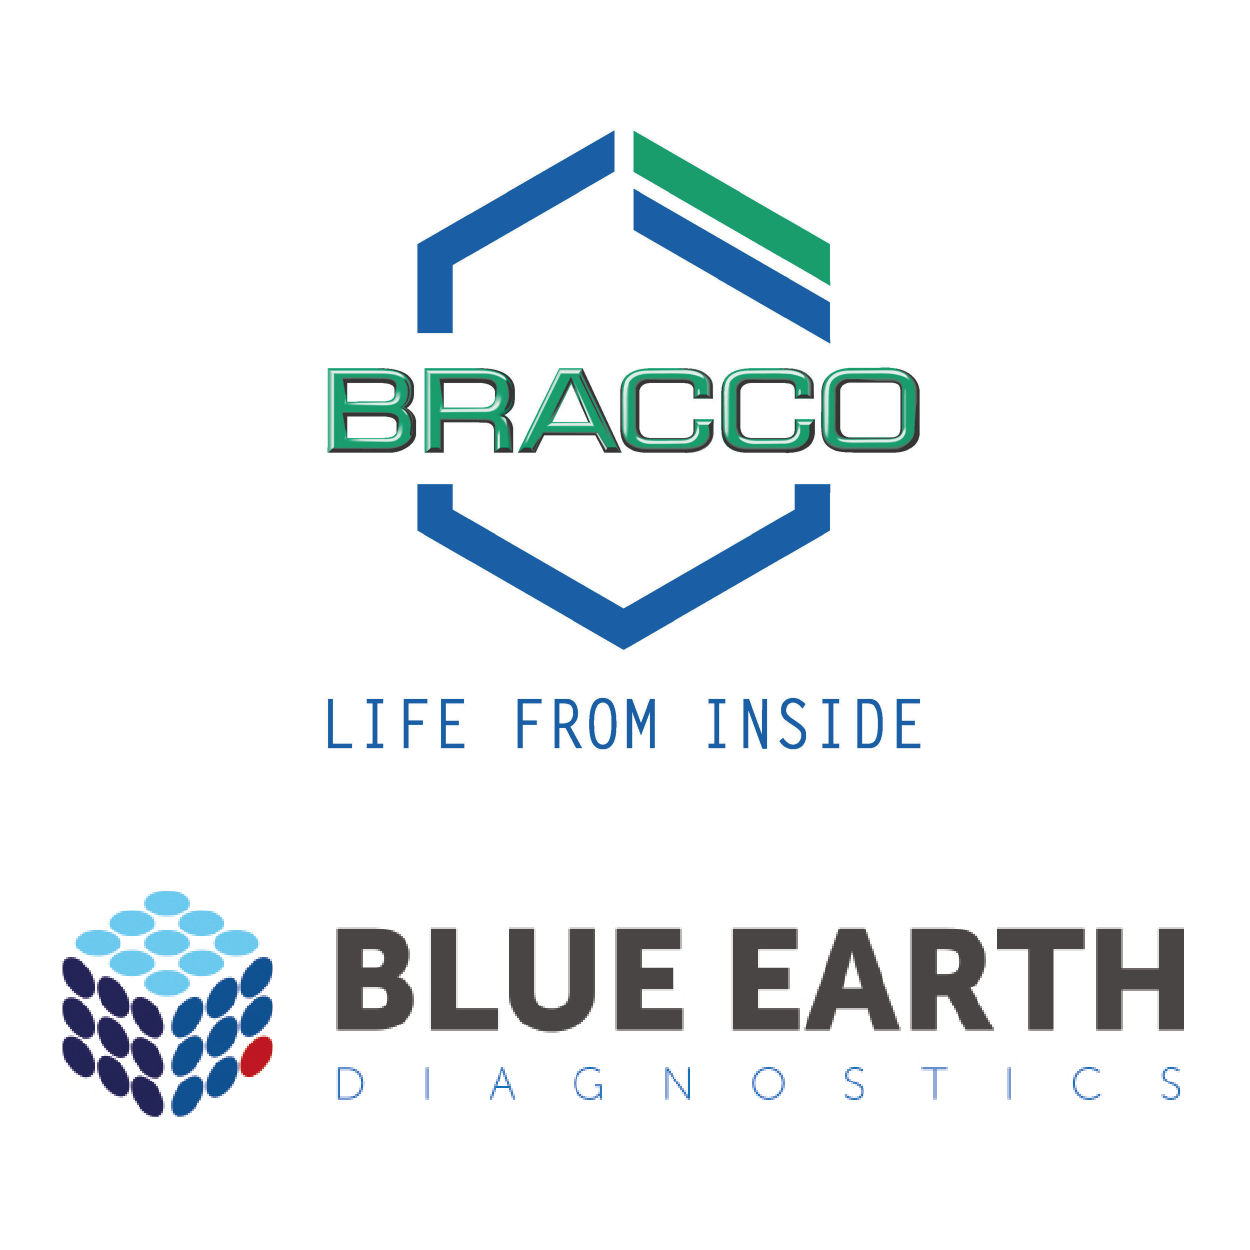 Bracco Diagnostics and Blue Earth Diagnostics